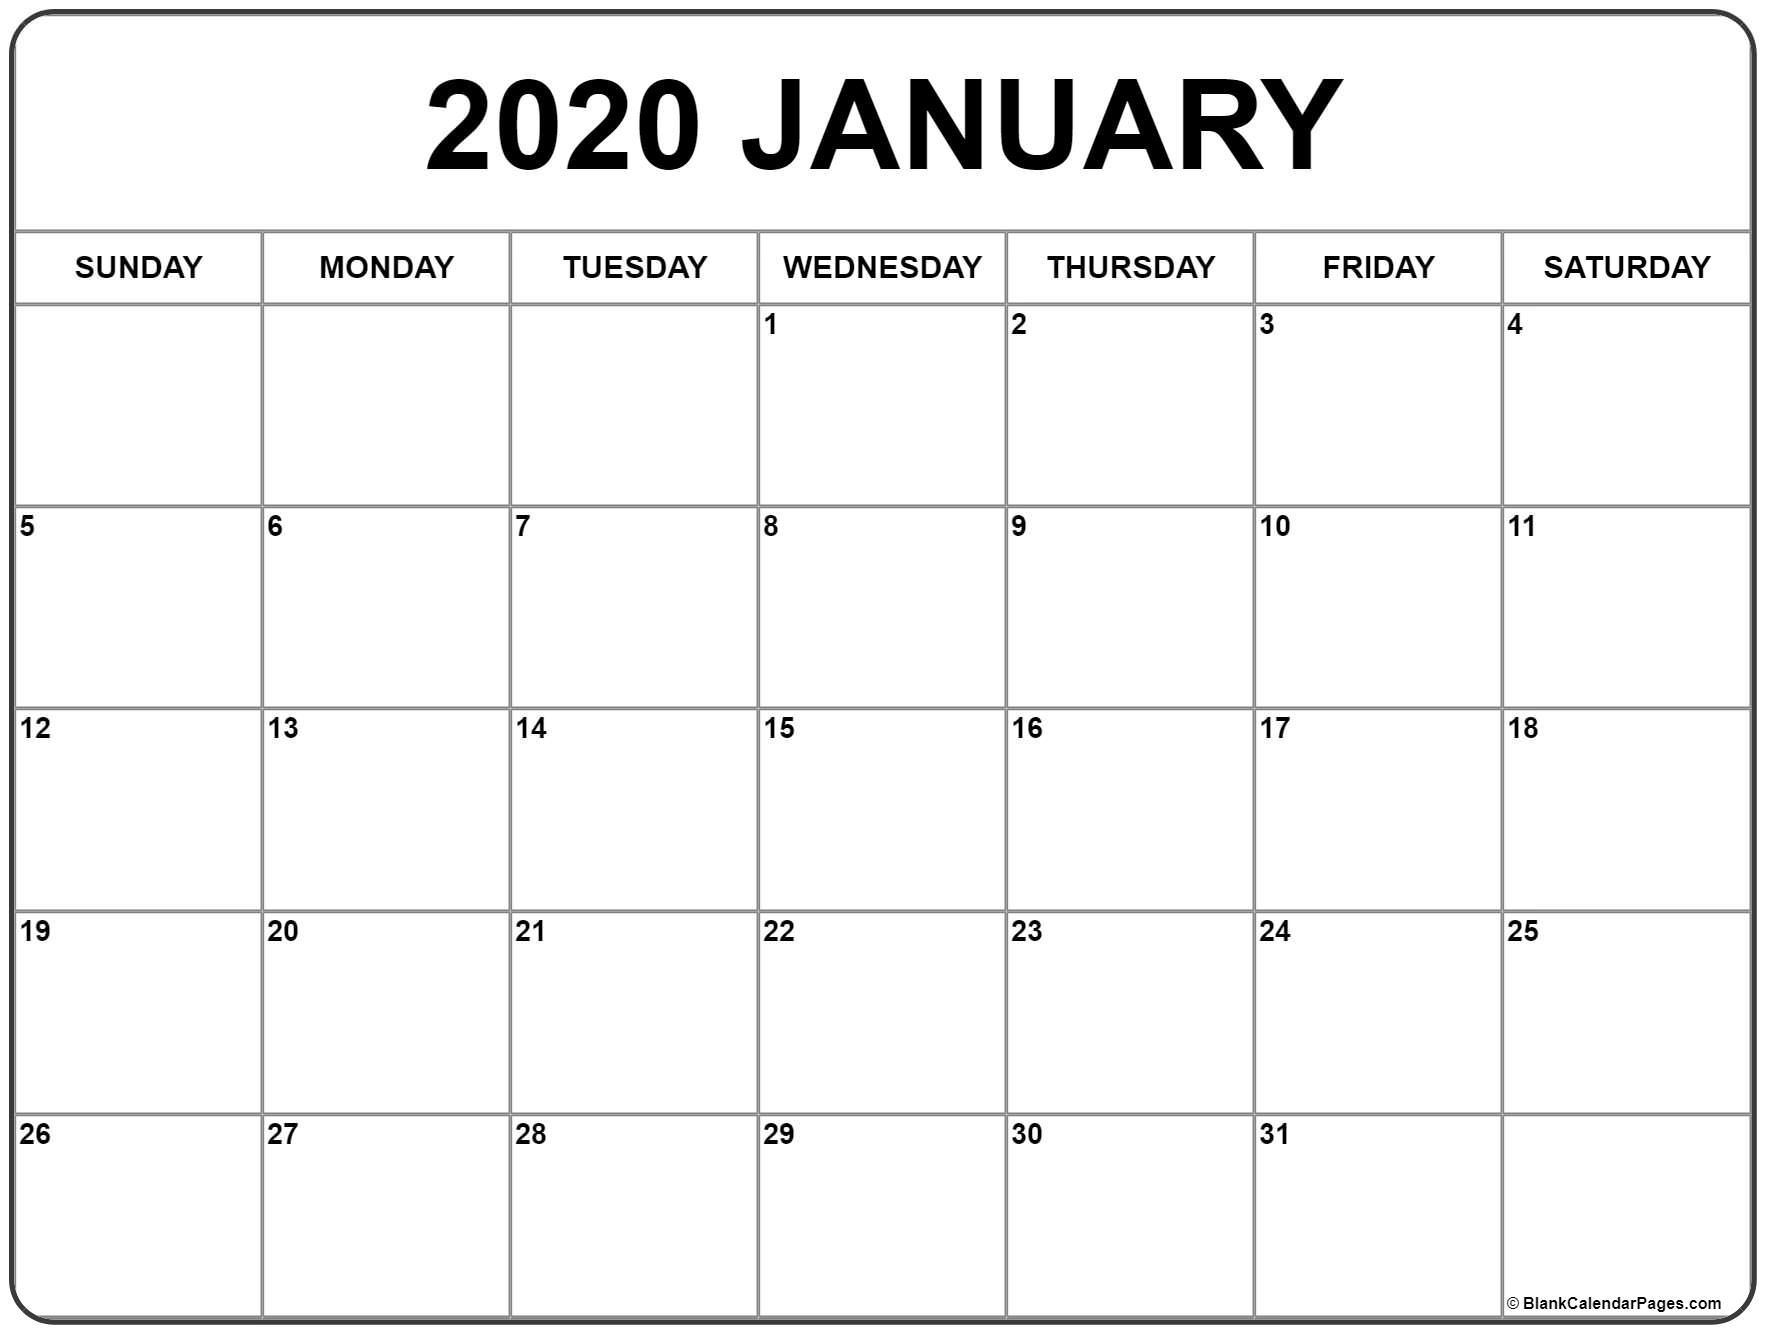 January 2020 Calendar Wallpapers  Top Free January 2020 with regard to 123 Calendars January 2020